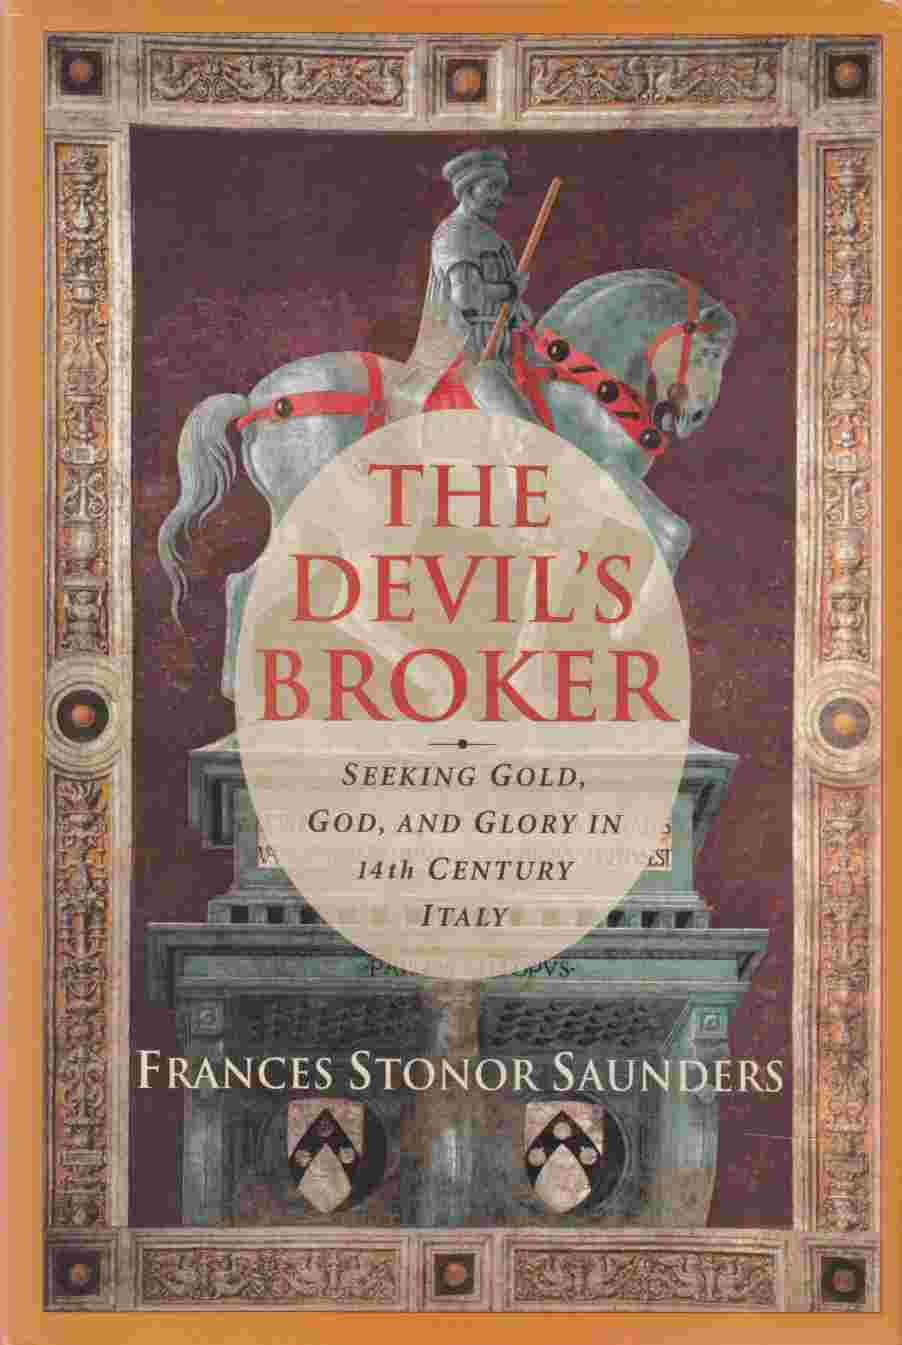 Image for The Devil's Broker Seeking Gold, God, and Glory in 14th Century Italy